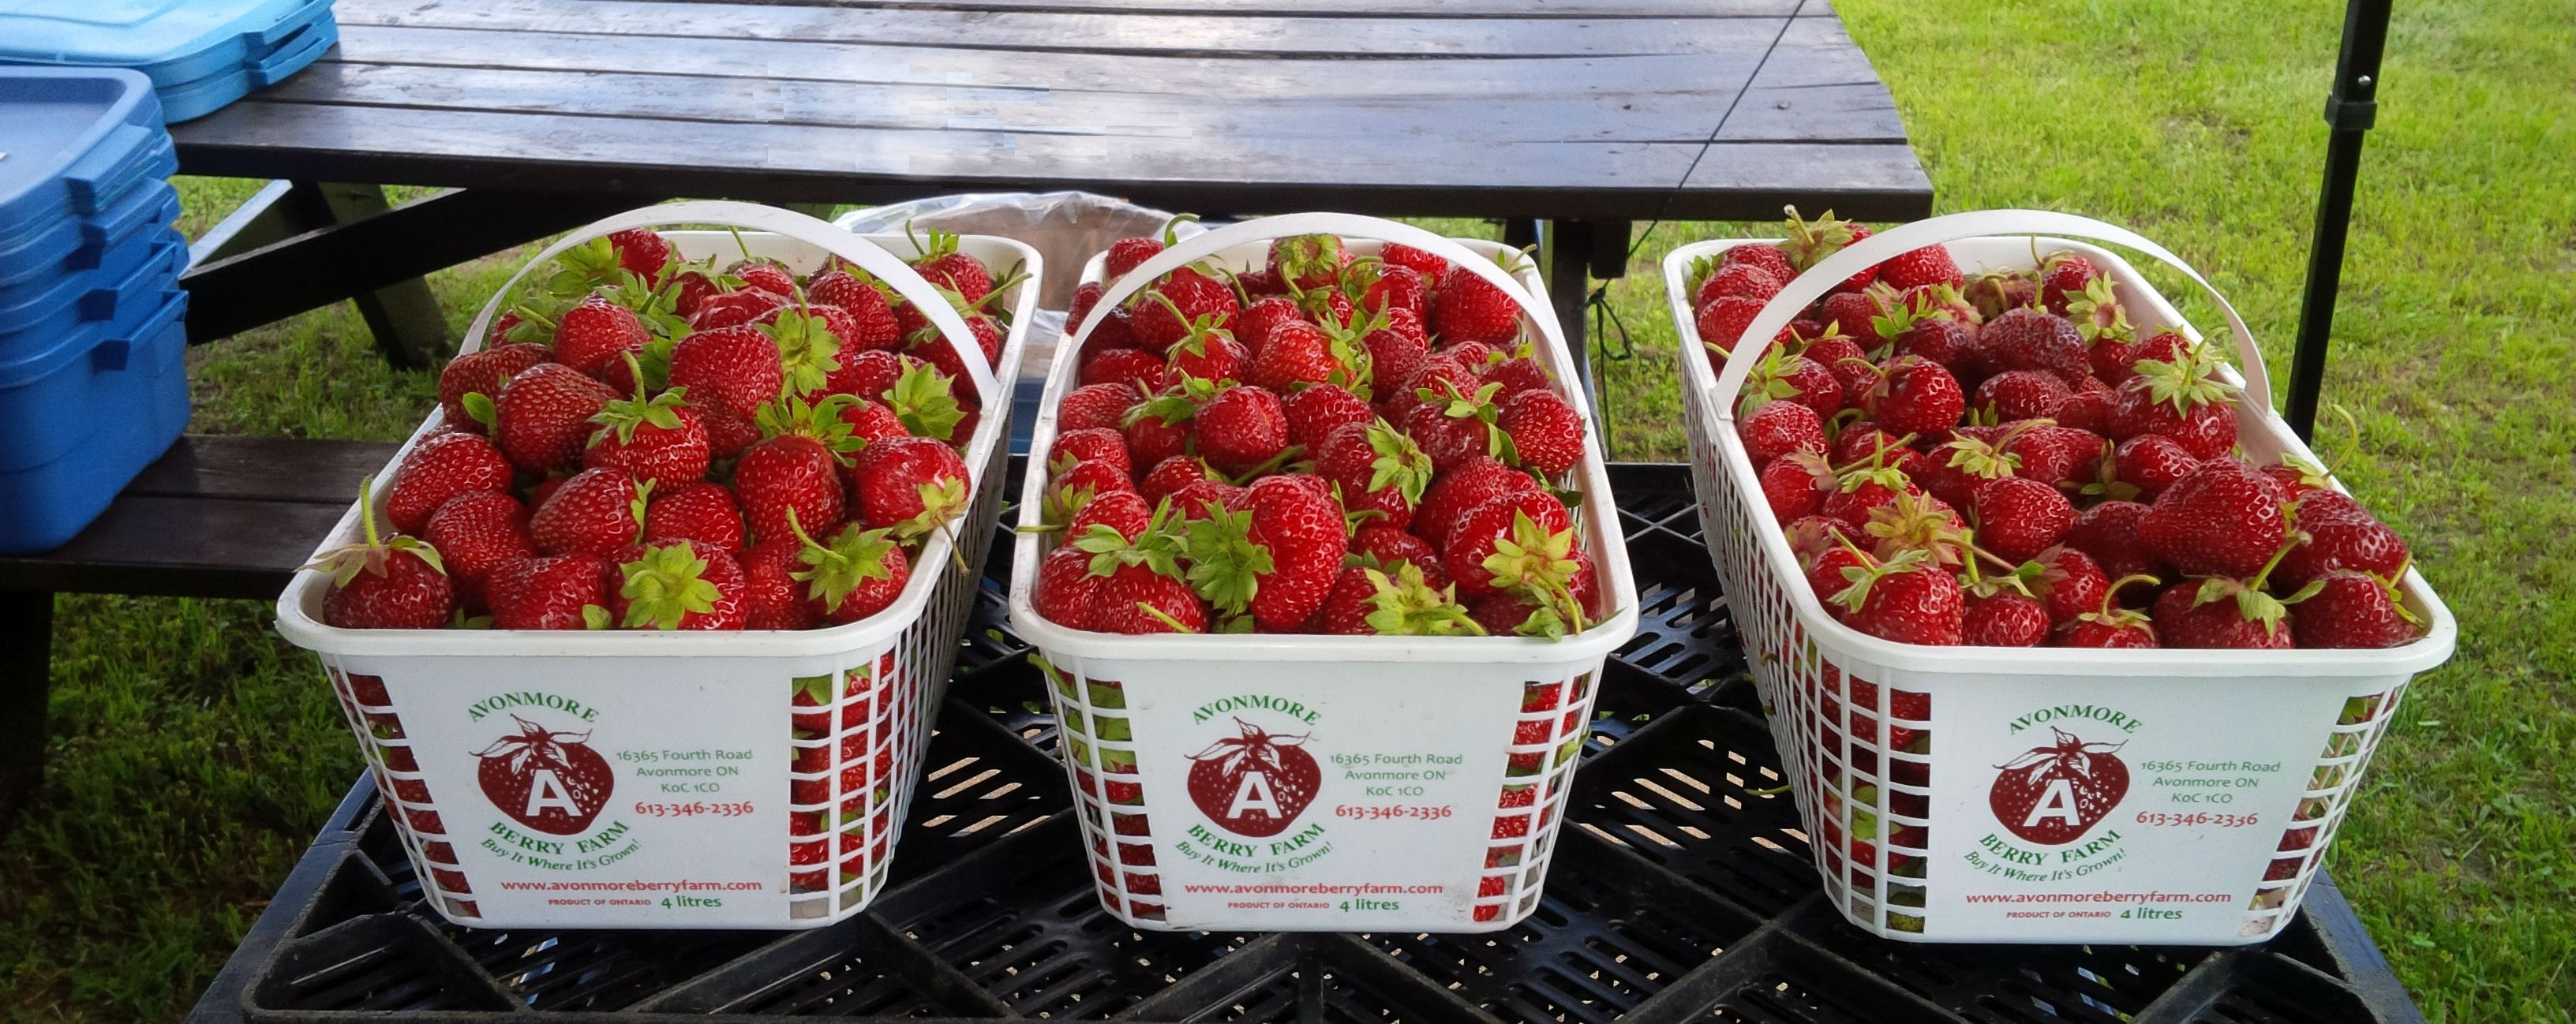 PIcture of Strawberries at Maxville Farmers Market